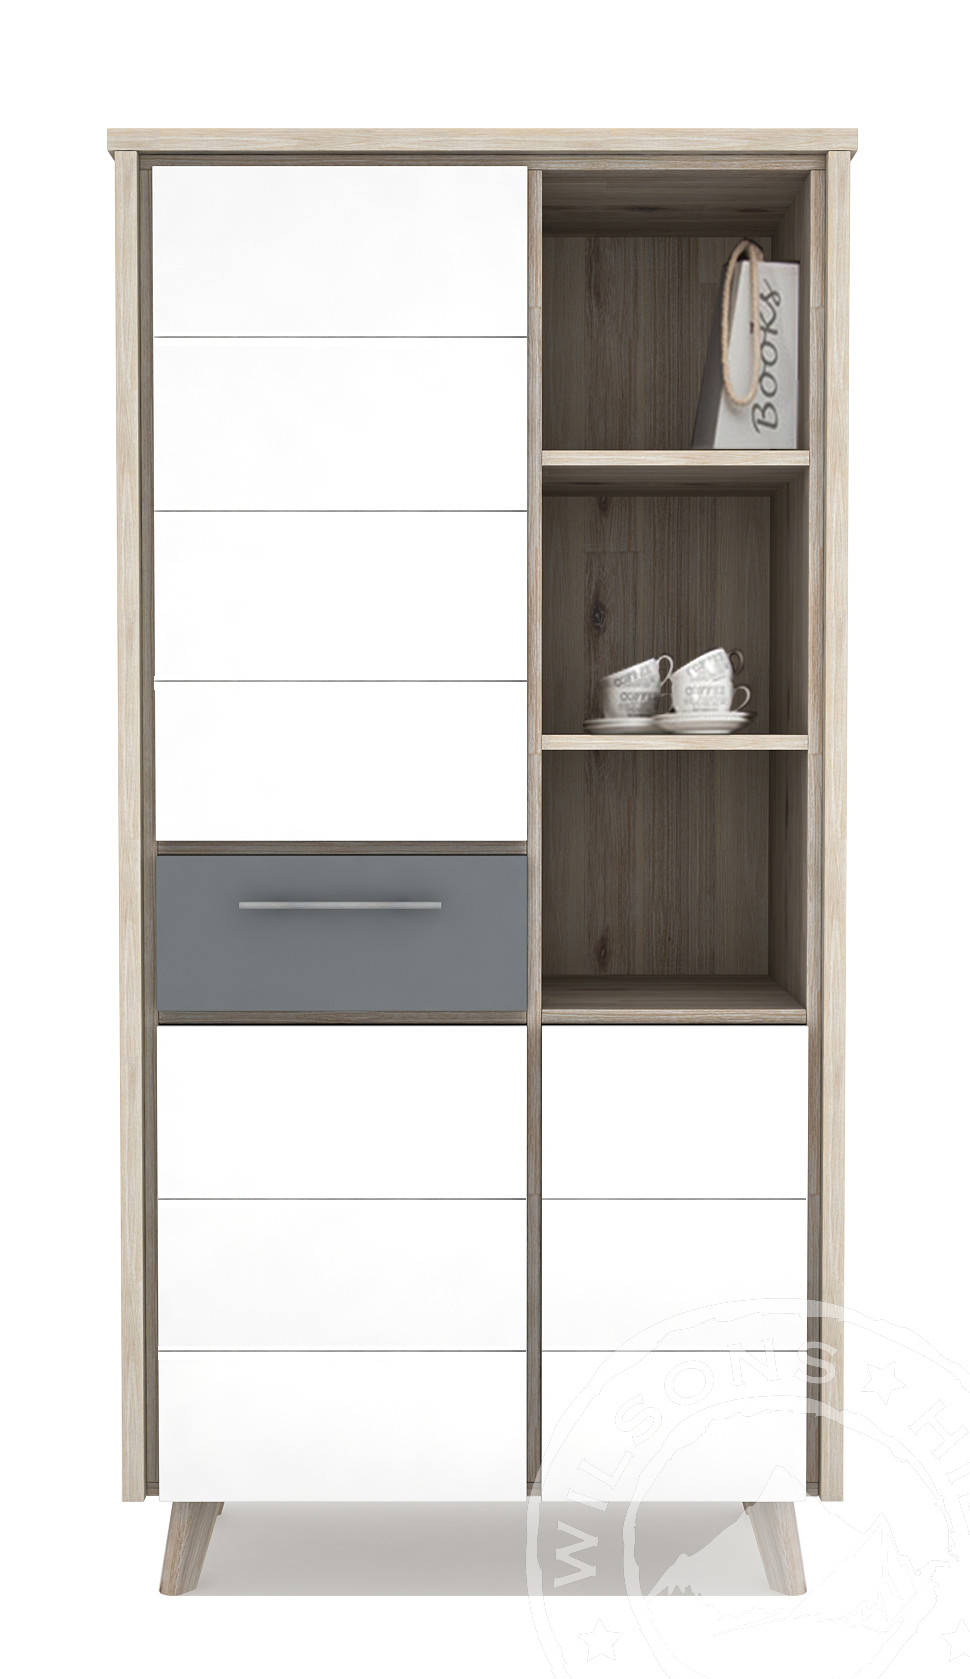 Ronda (Highboard 3drs, 1drw, 3niches)